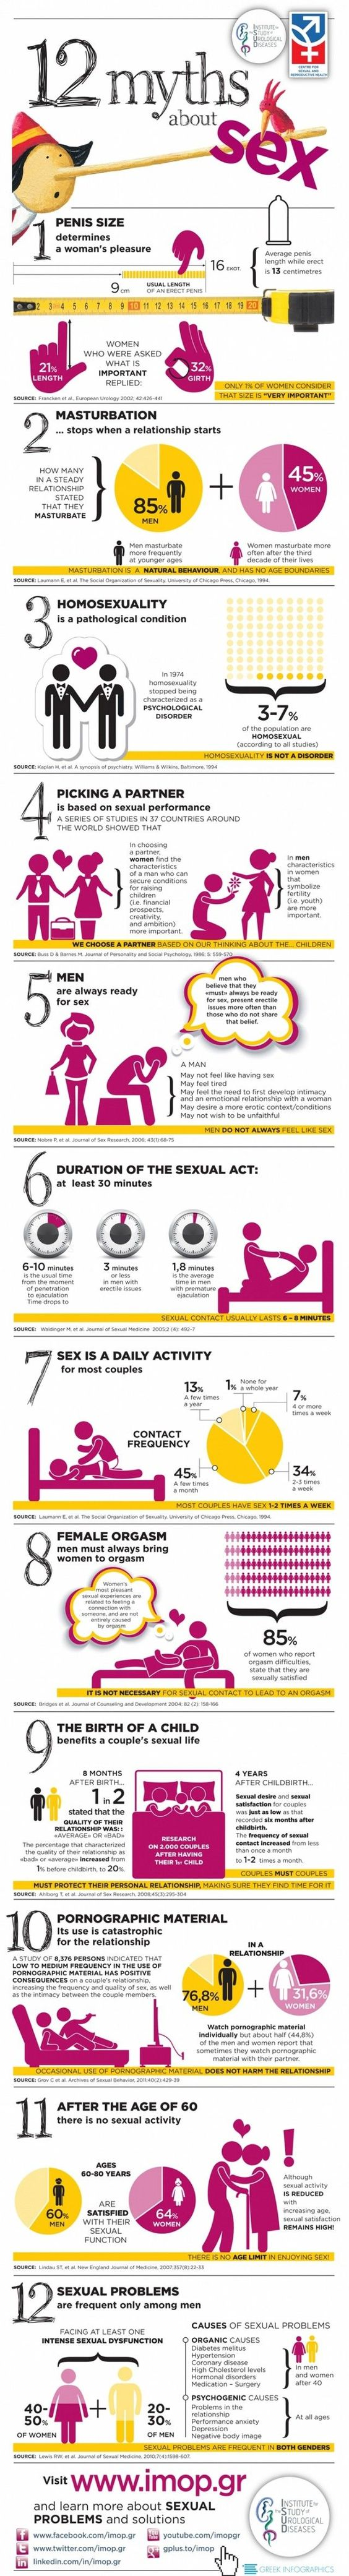 12 Myths About Sex, good news its healthy